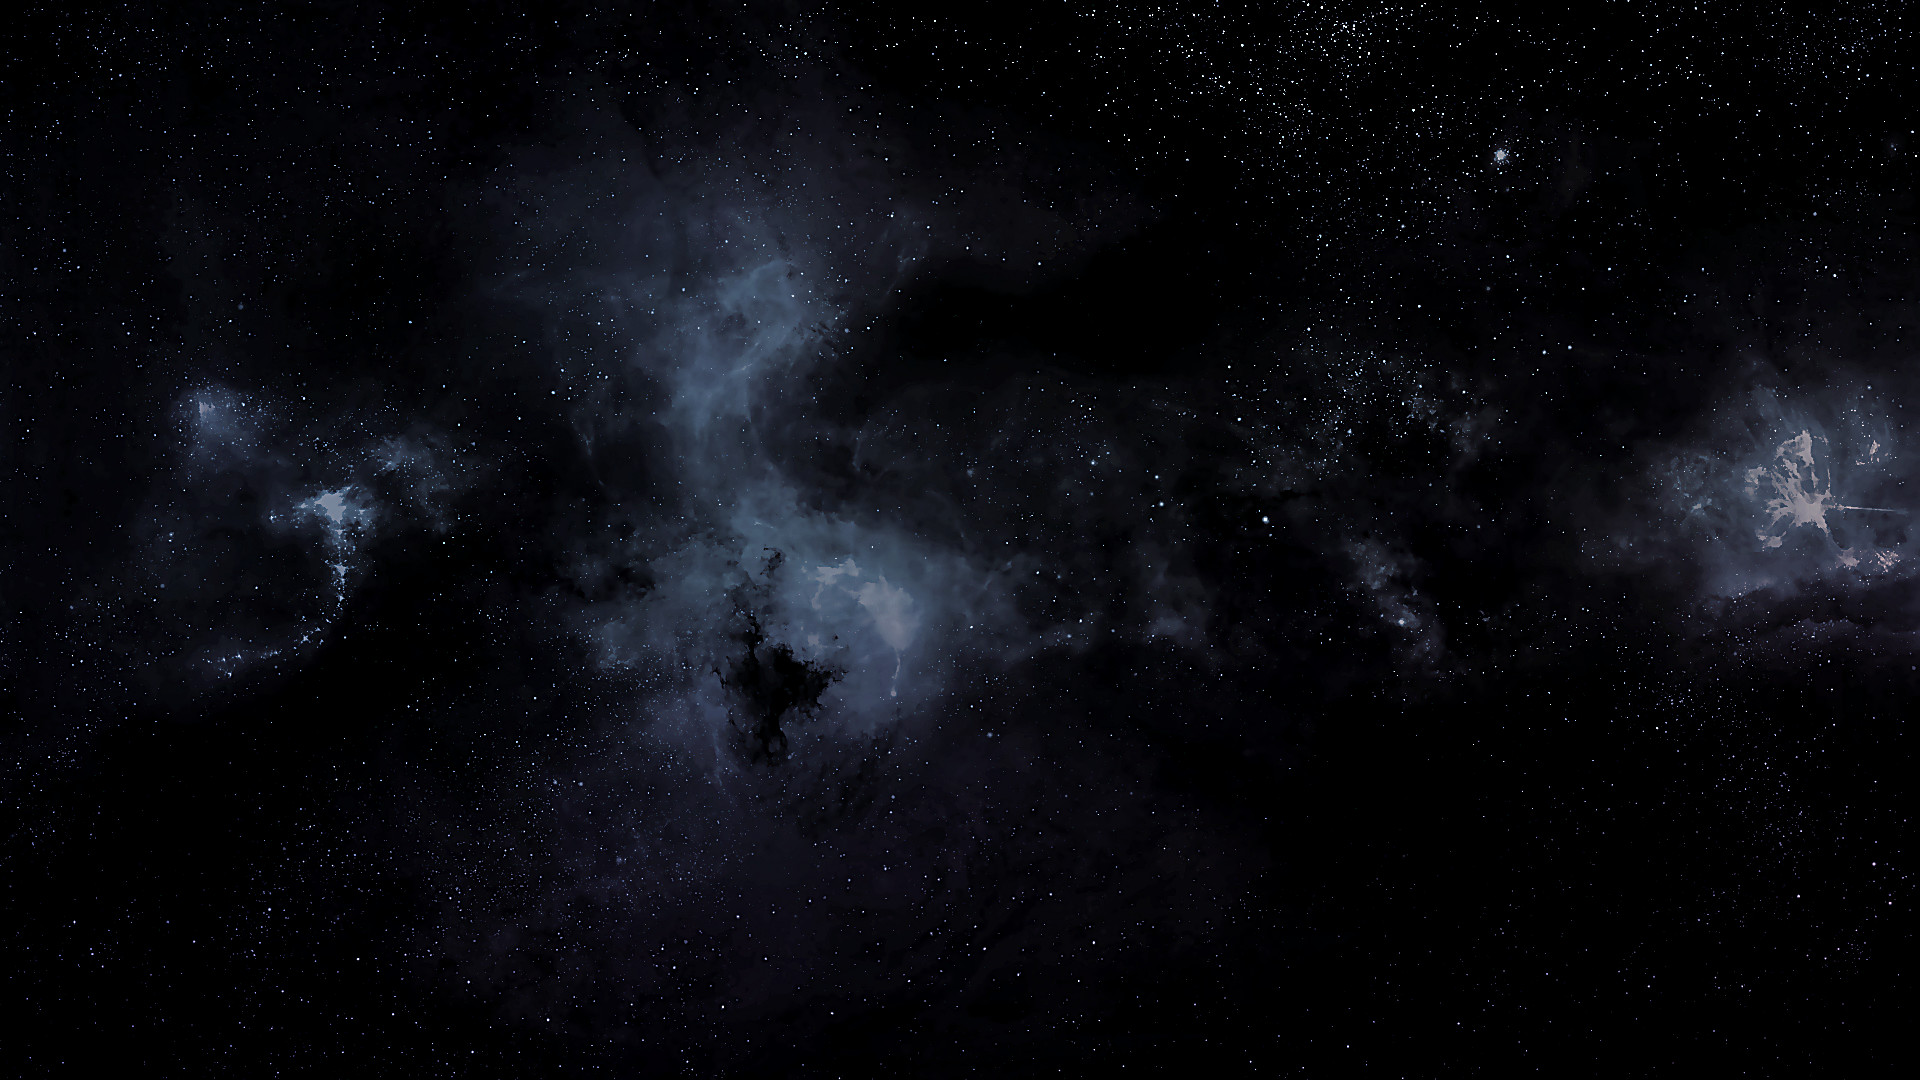 1920x1080 does anyone have any pure black wallpapers for amoled screens